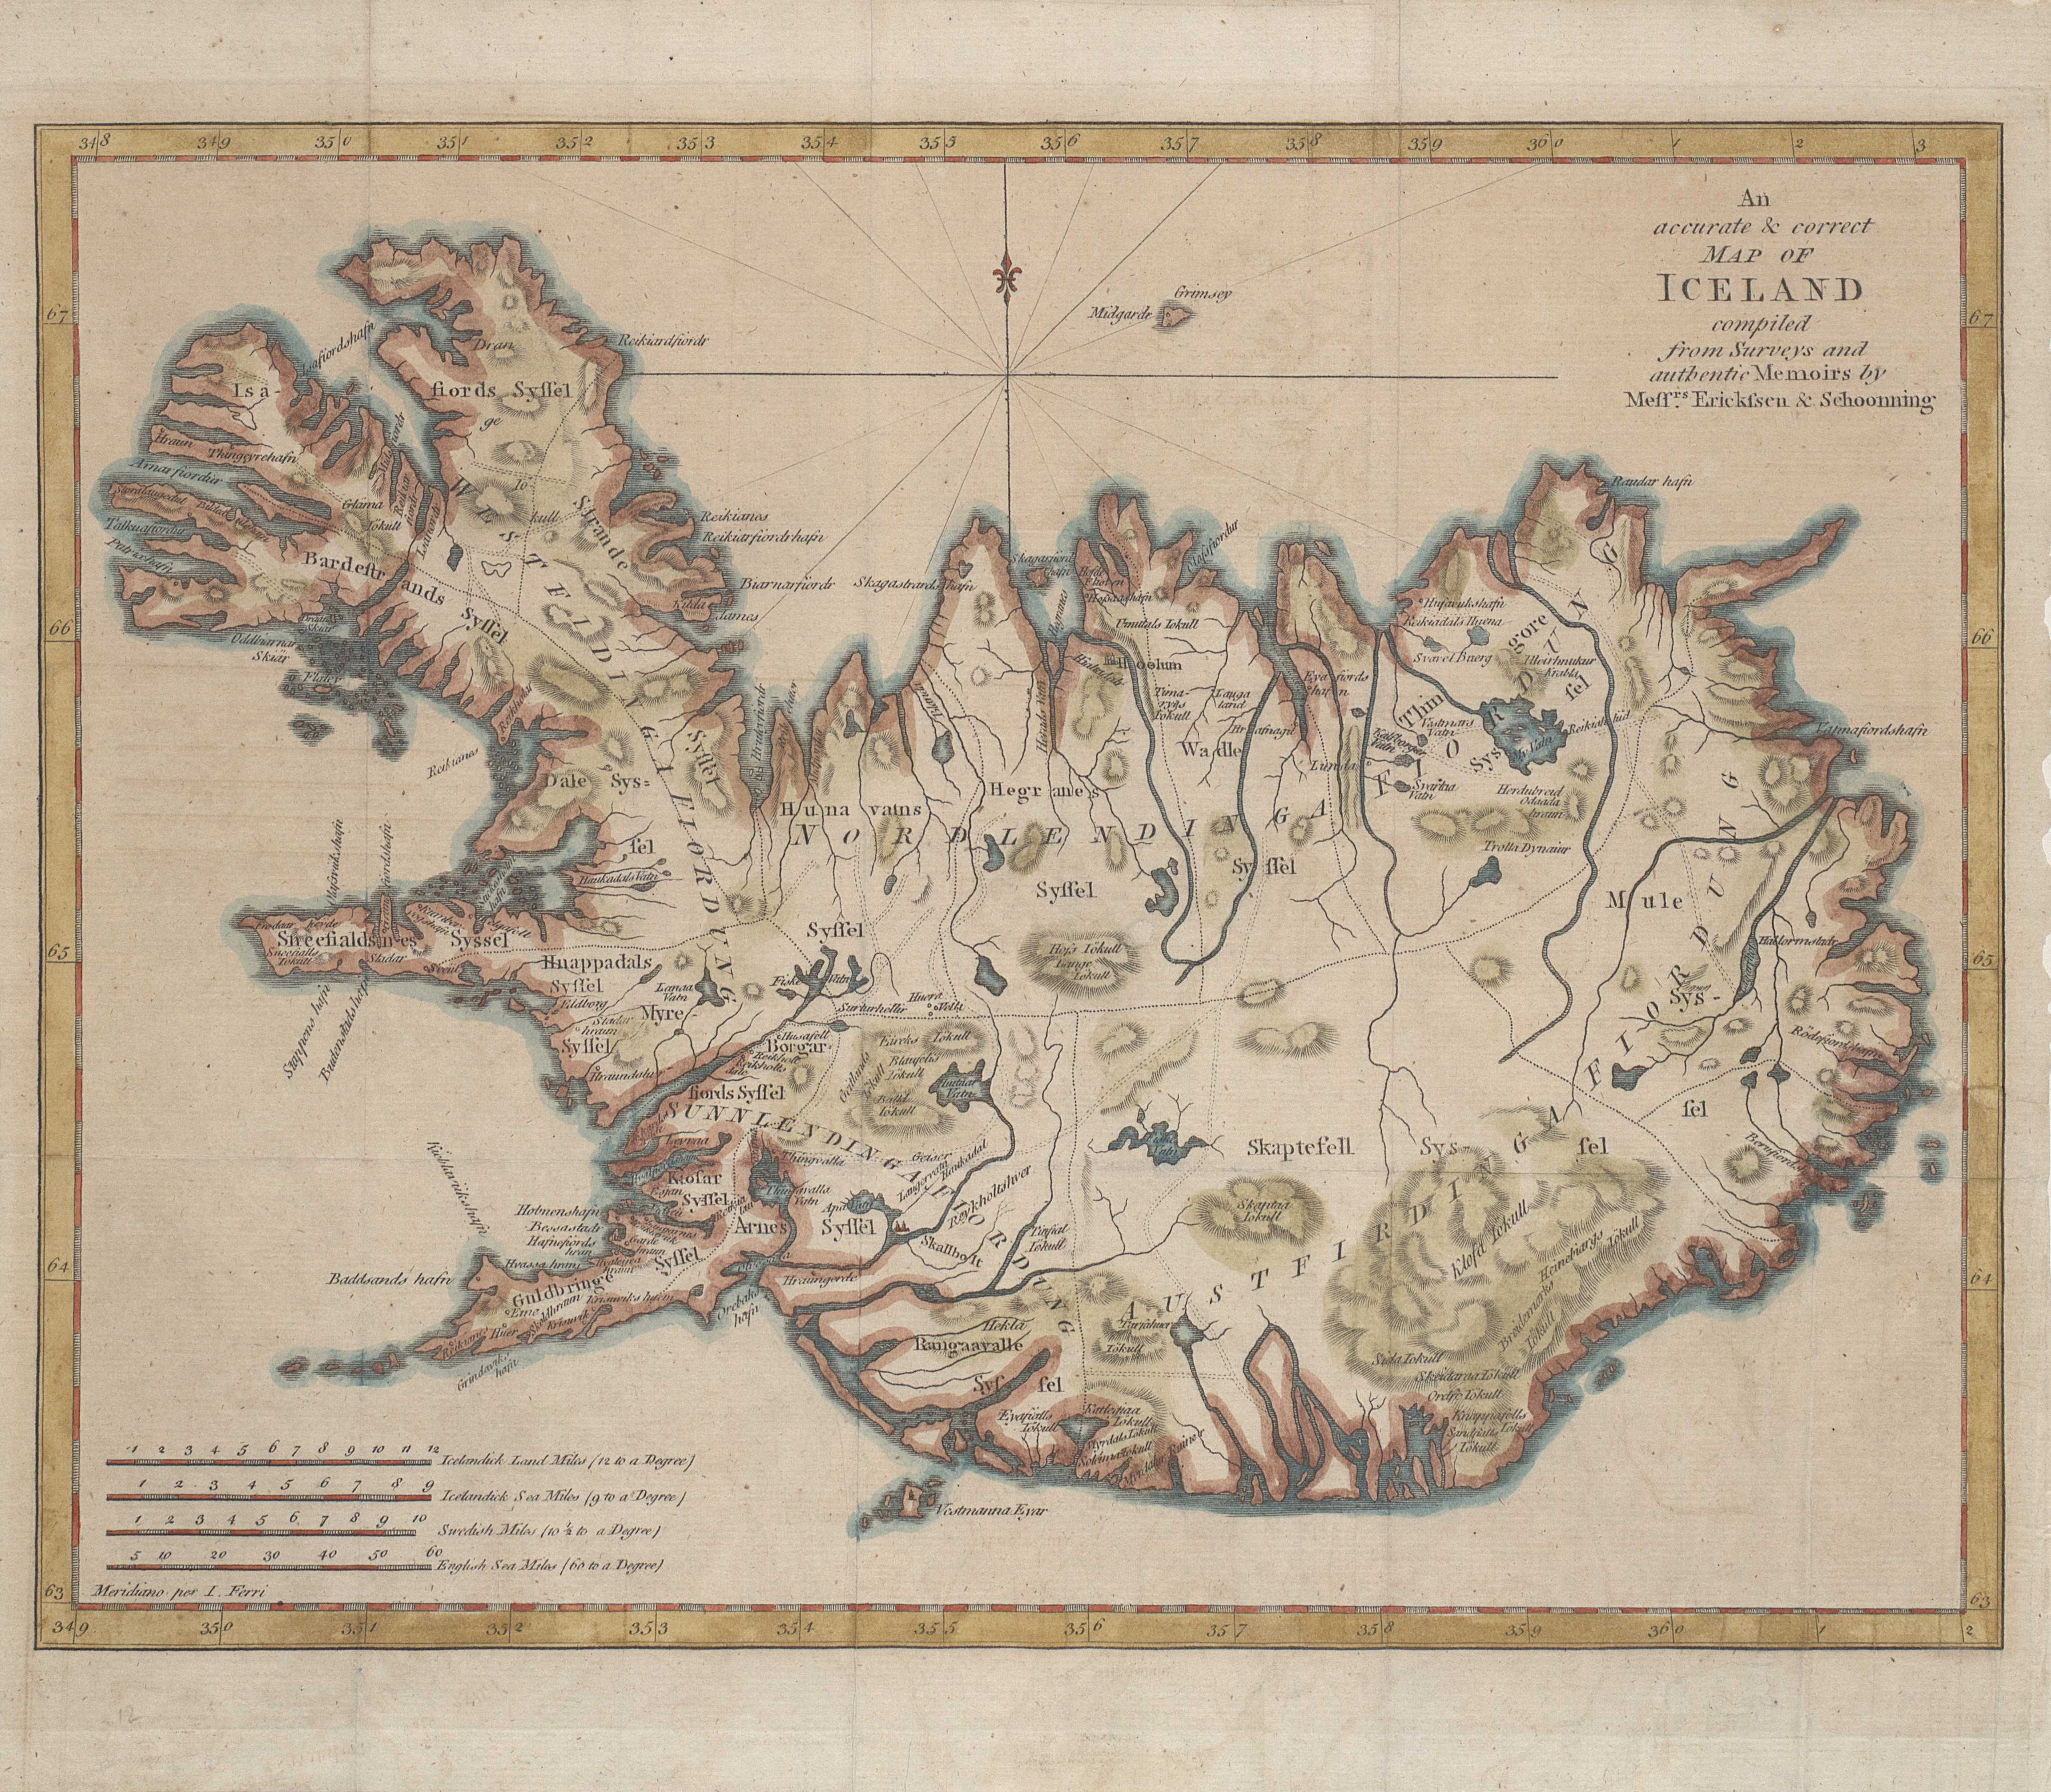 An accurate & correct map of Iceland